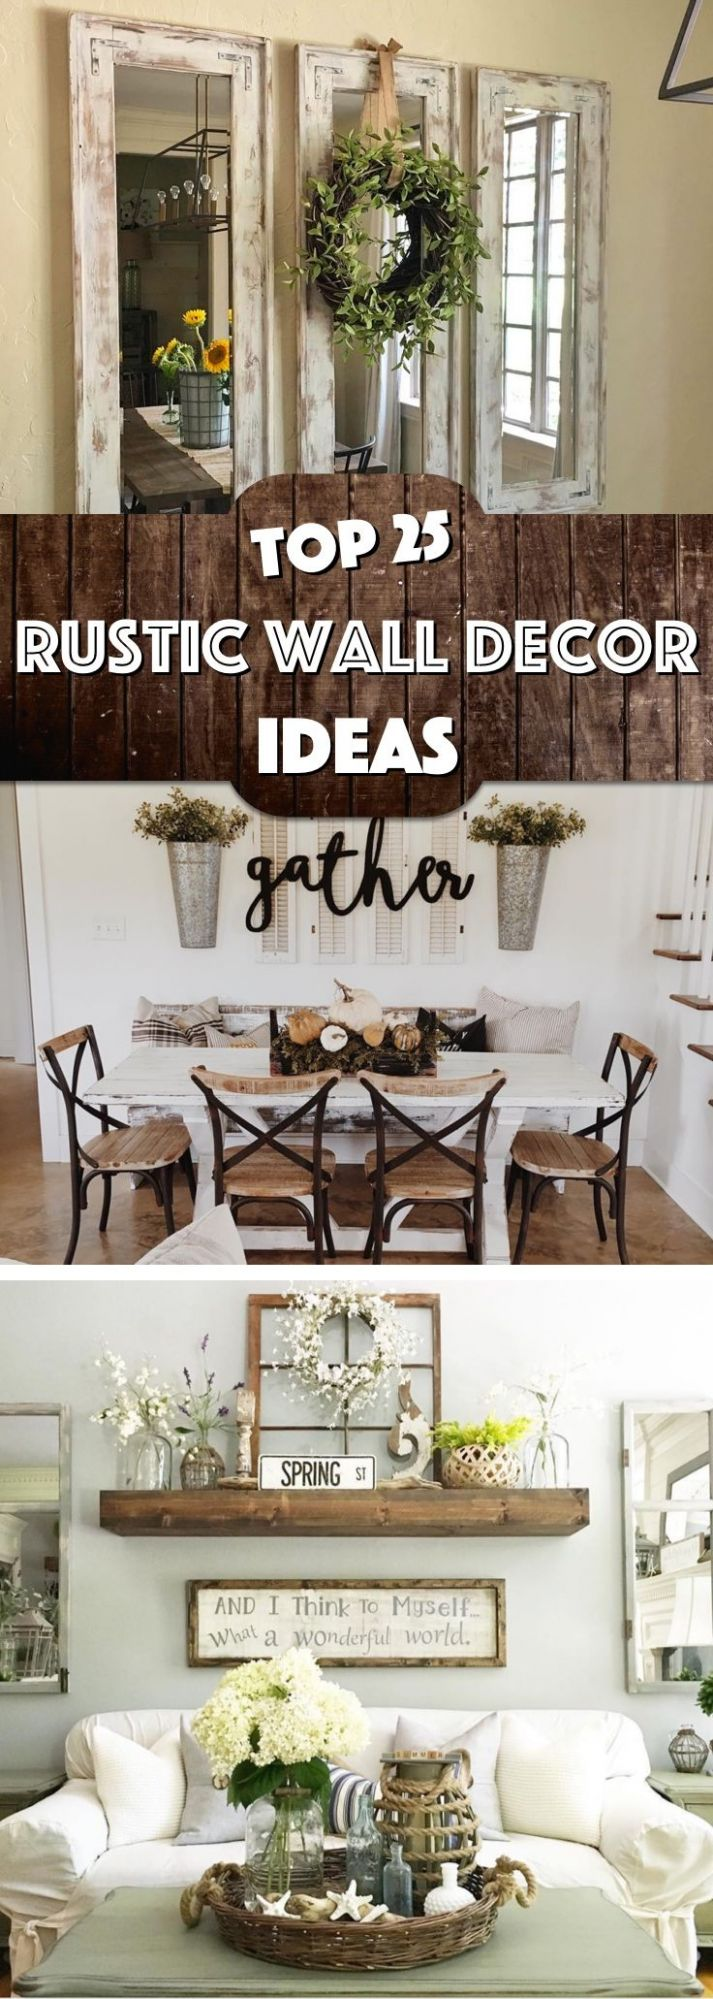 8 Must-Try Rustic Wall Decor Ideas Featuring The Most Amazing ...